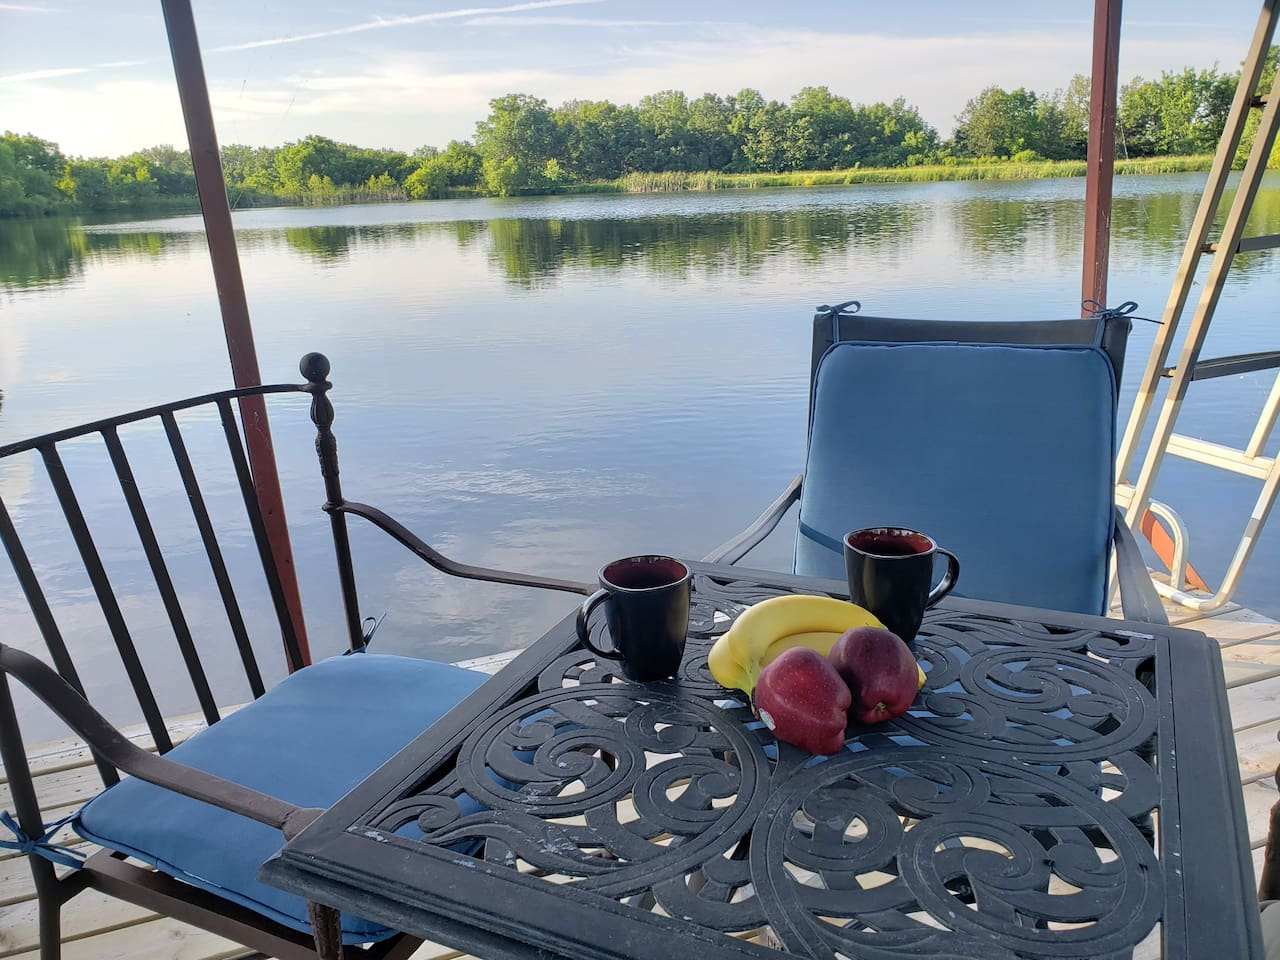 Have some morning coffee on the dock to start your day right